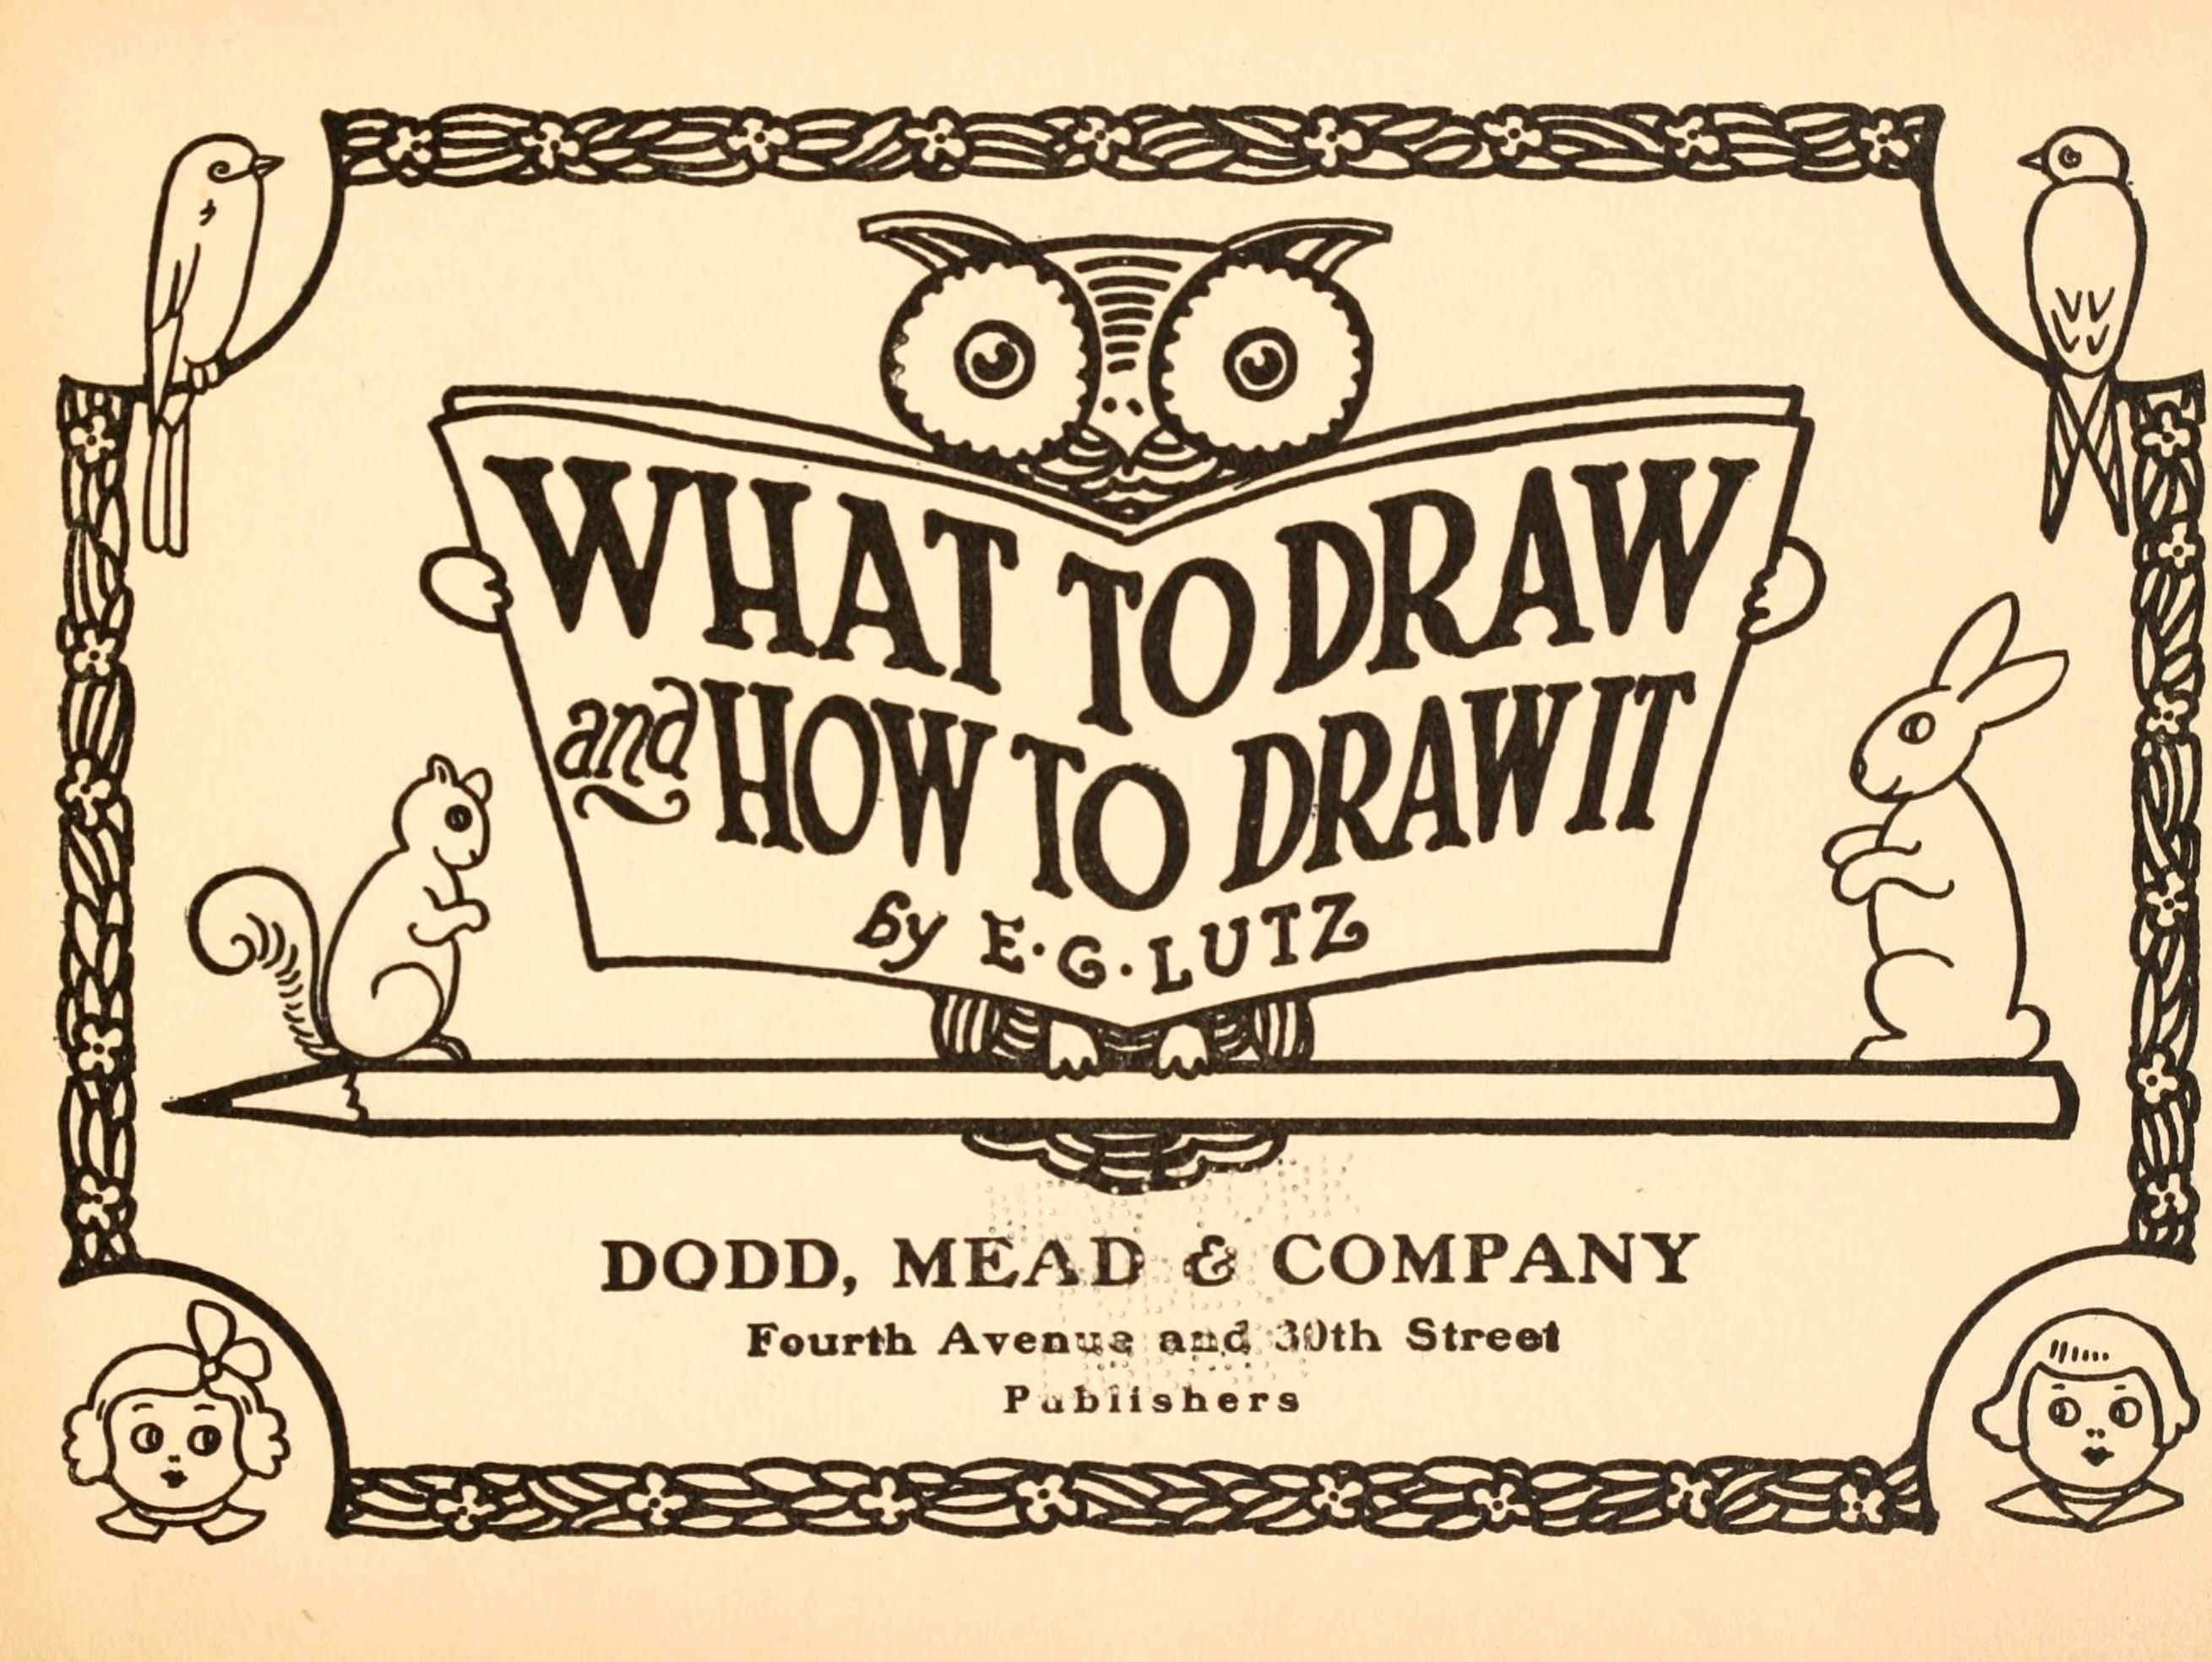 online book, how to draw